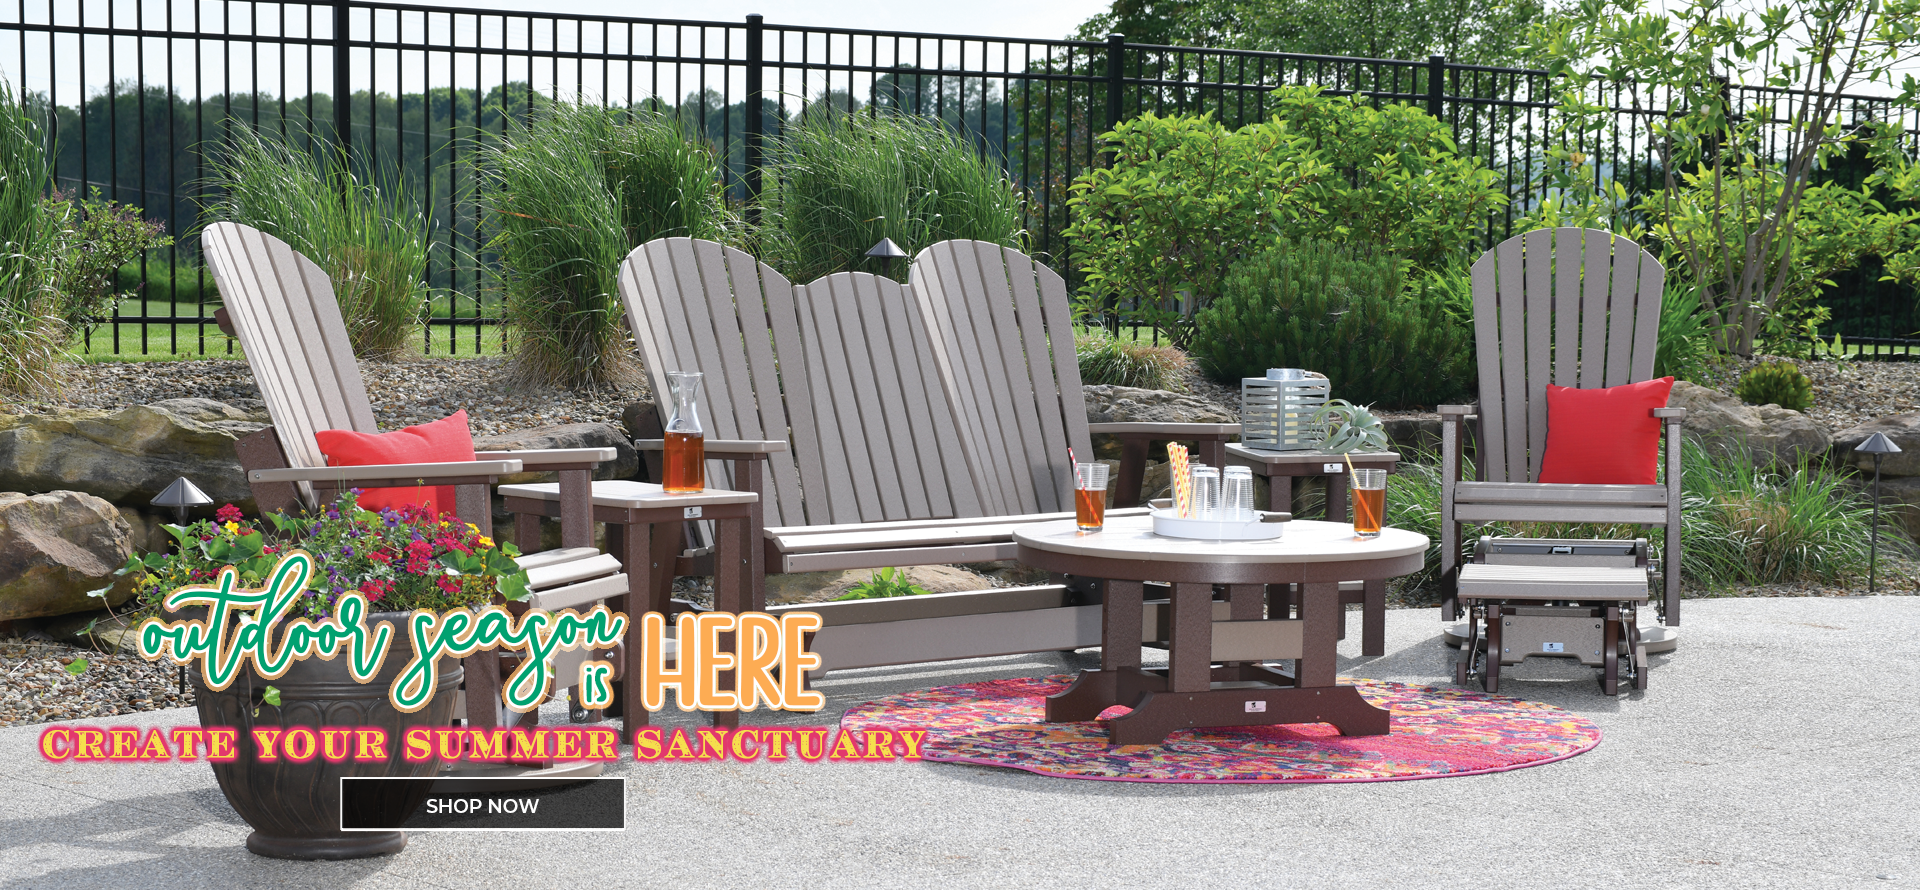 Outdoor season is here! Create your summer sanctuary. Click to start shopping.